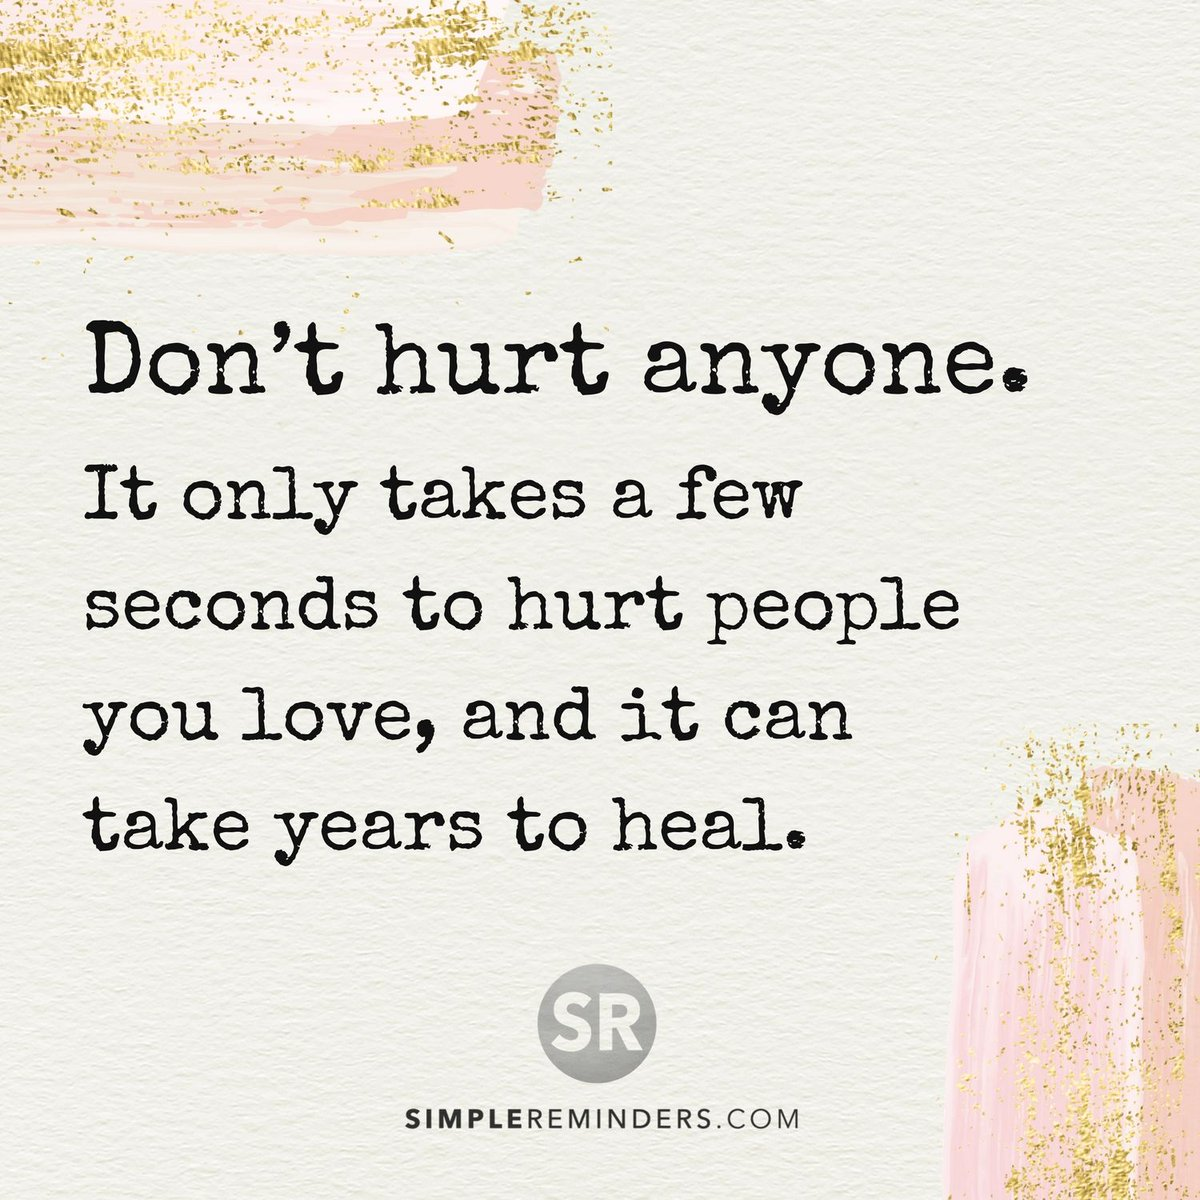 Mcgill Media On Twitter Don T Hurt Anyone It Only Takes A Few Seconds To Hurt People You Love And It Can Take Years To Heal Mysimplereminders Bryantmcgill Jenniyoungmcgill Simplereminders Inspiration Quotes Quotestoliveby